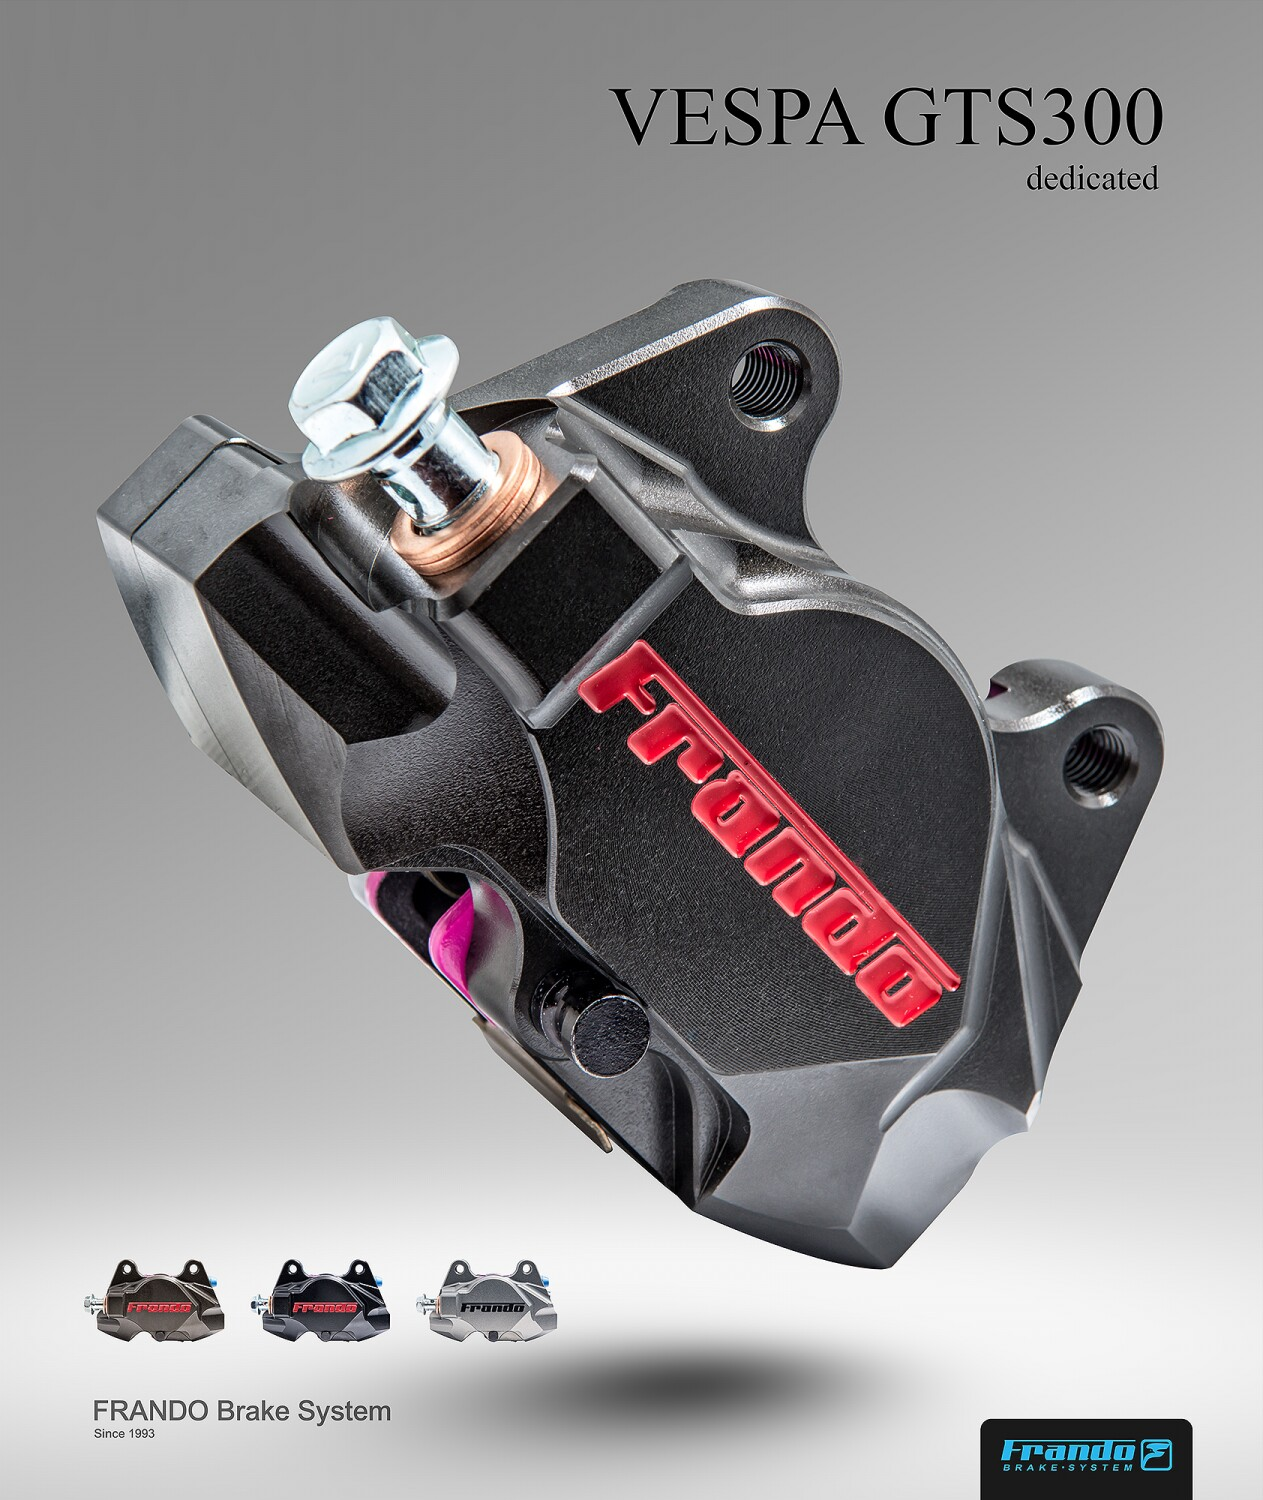 Frando F901 series CNC pair piston calipers Rear brake calipers for piaggio vespa  GTS 300/ LX/LXV crabs-in Brake Shoe Sets from Automobiles & Motorcycles